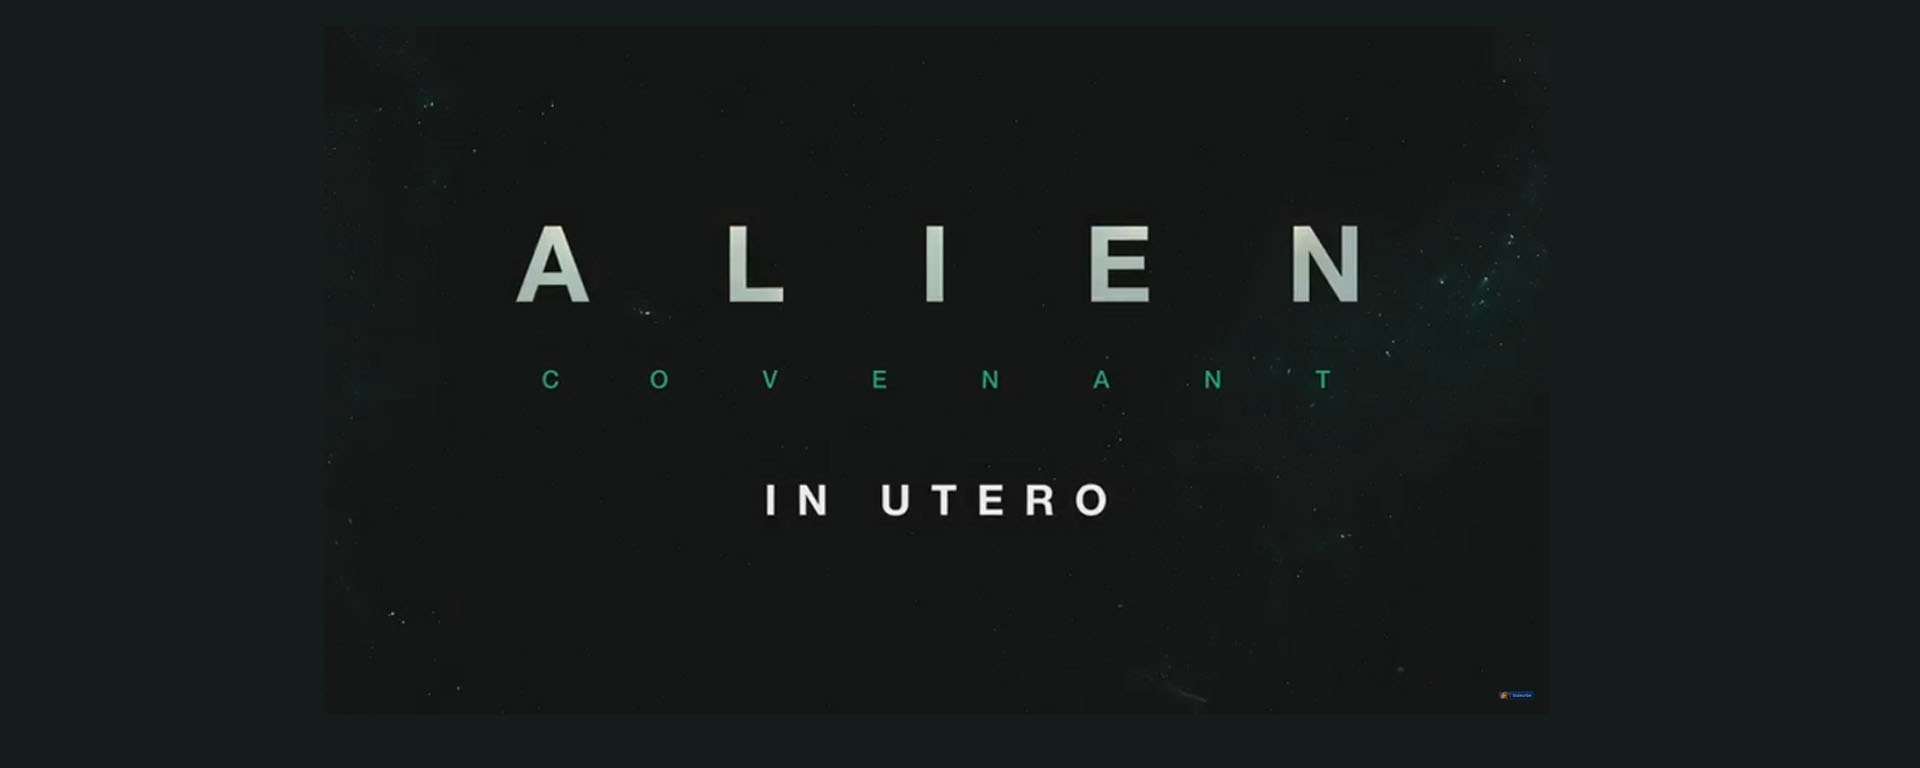 Alien covenant in utero